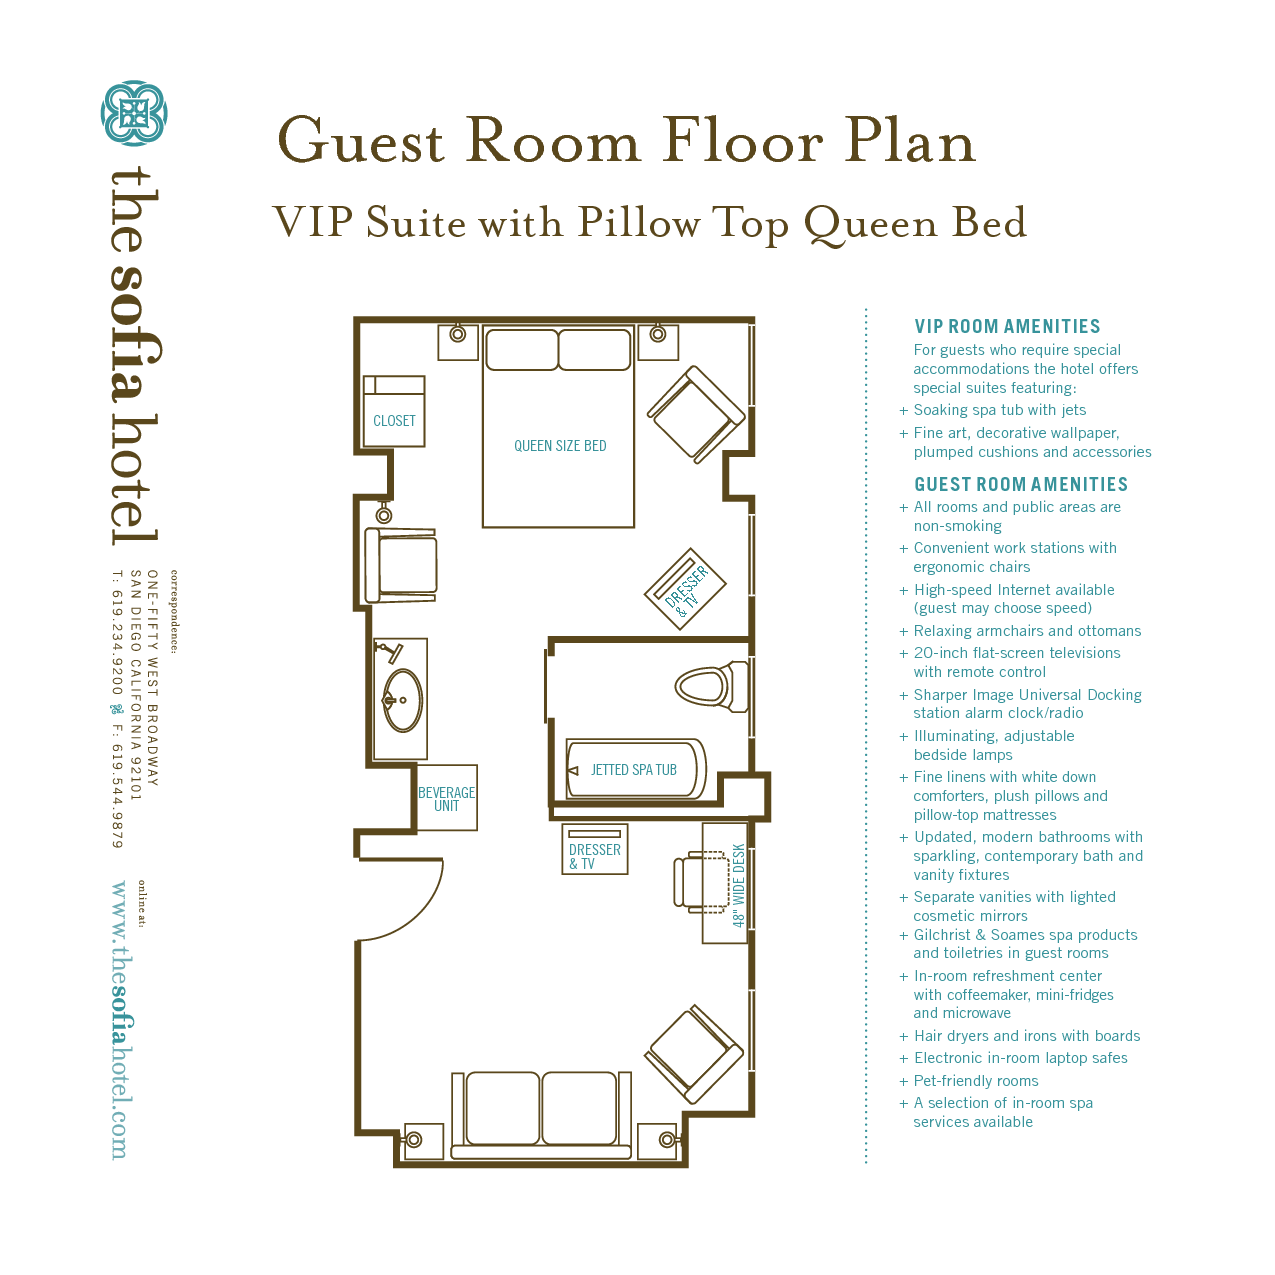 Typical Hotel Room Floor Plan | Scope Of Work Template